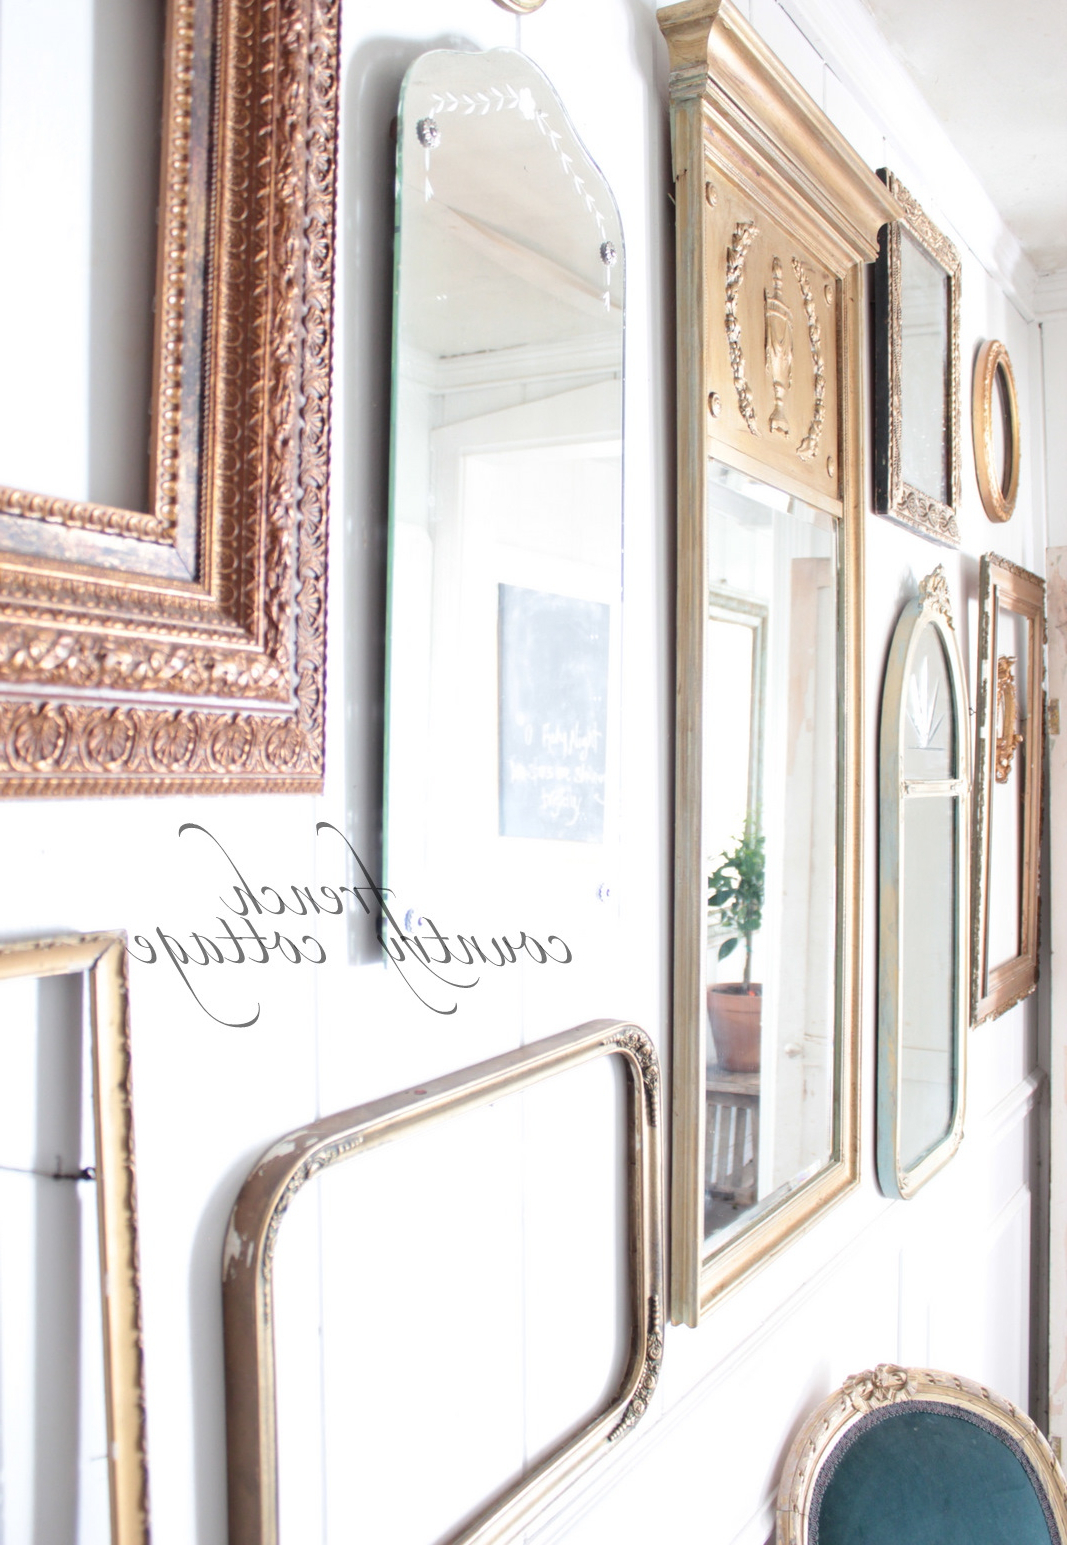 Gallery Wall Of Frames & Mirrors – French Country Cottage Intended For 2020 Gallery Wall Mirrors (View 19 of 20)